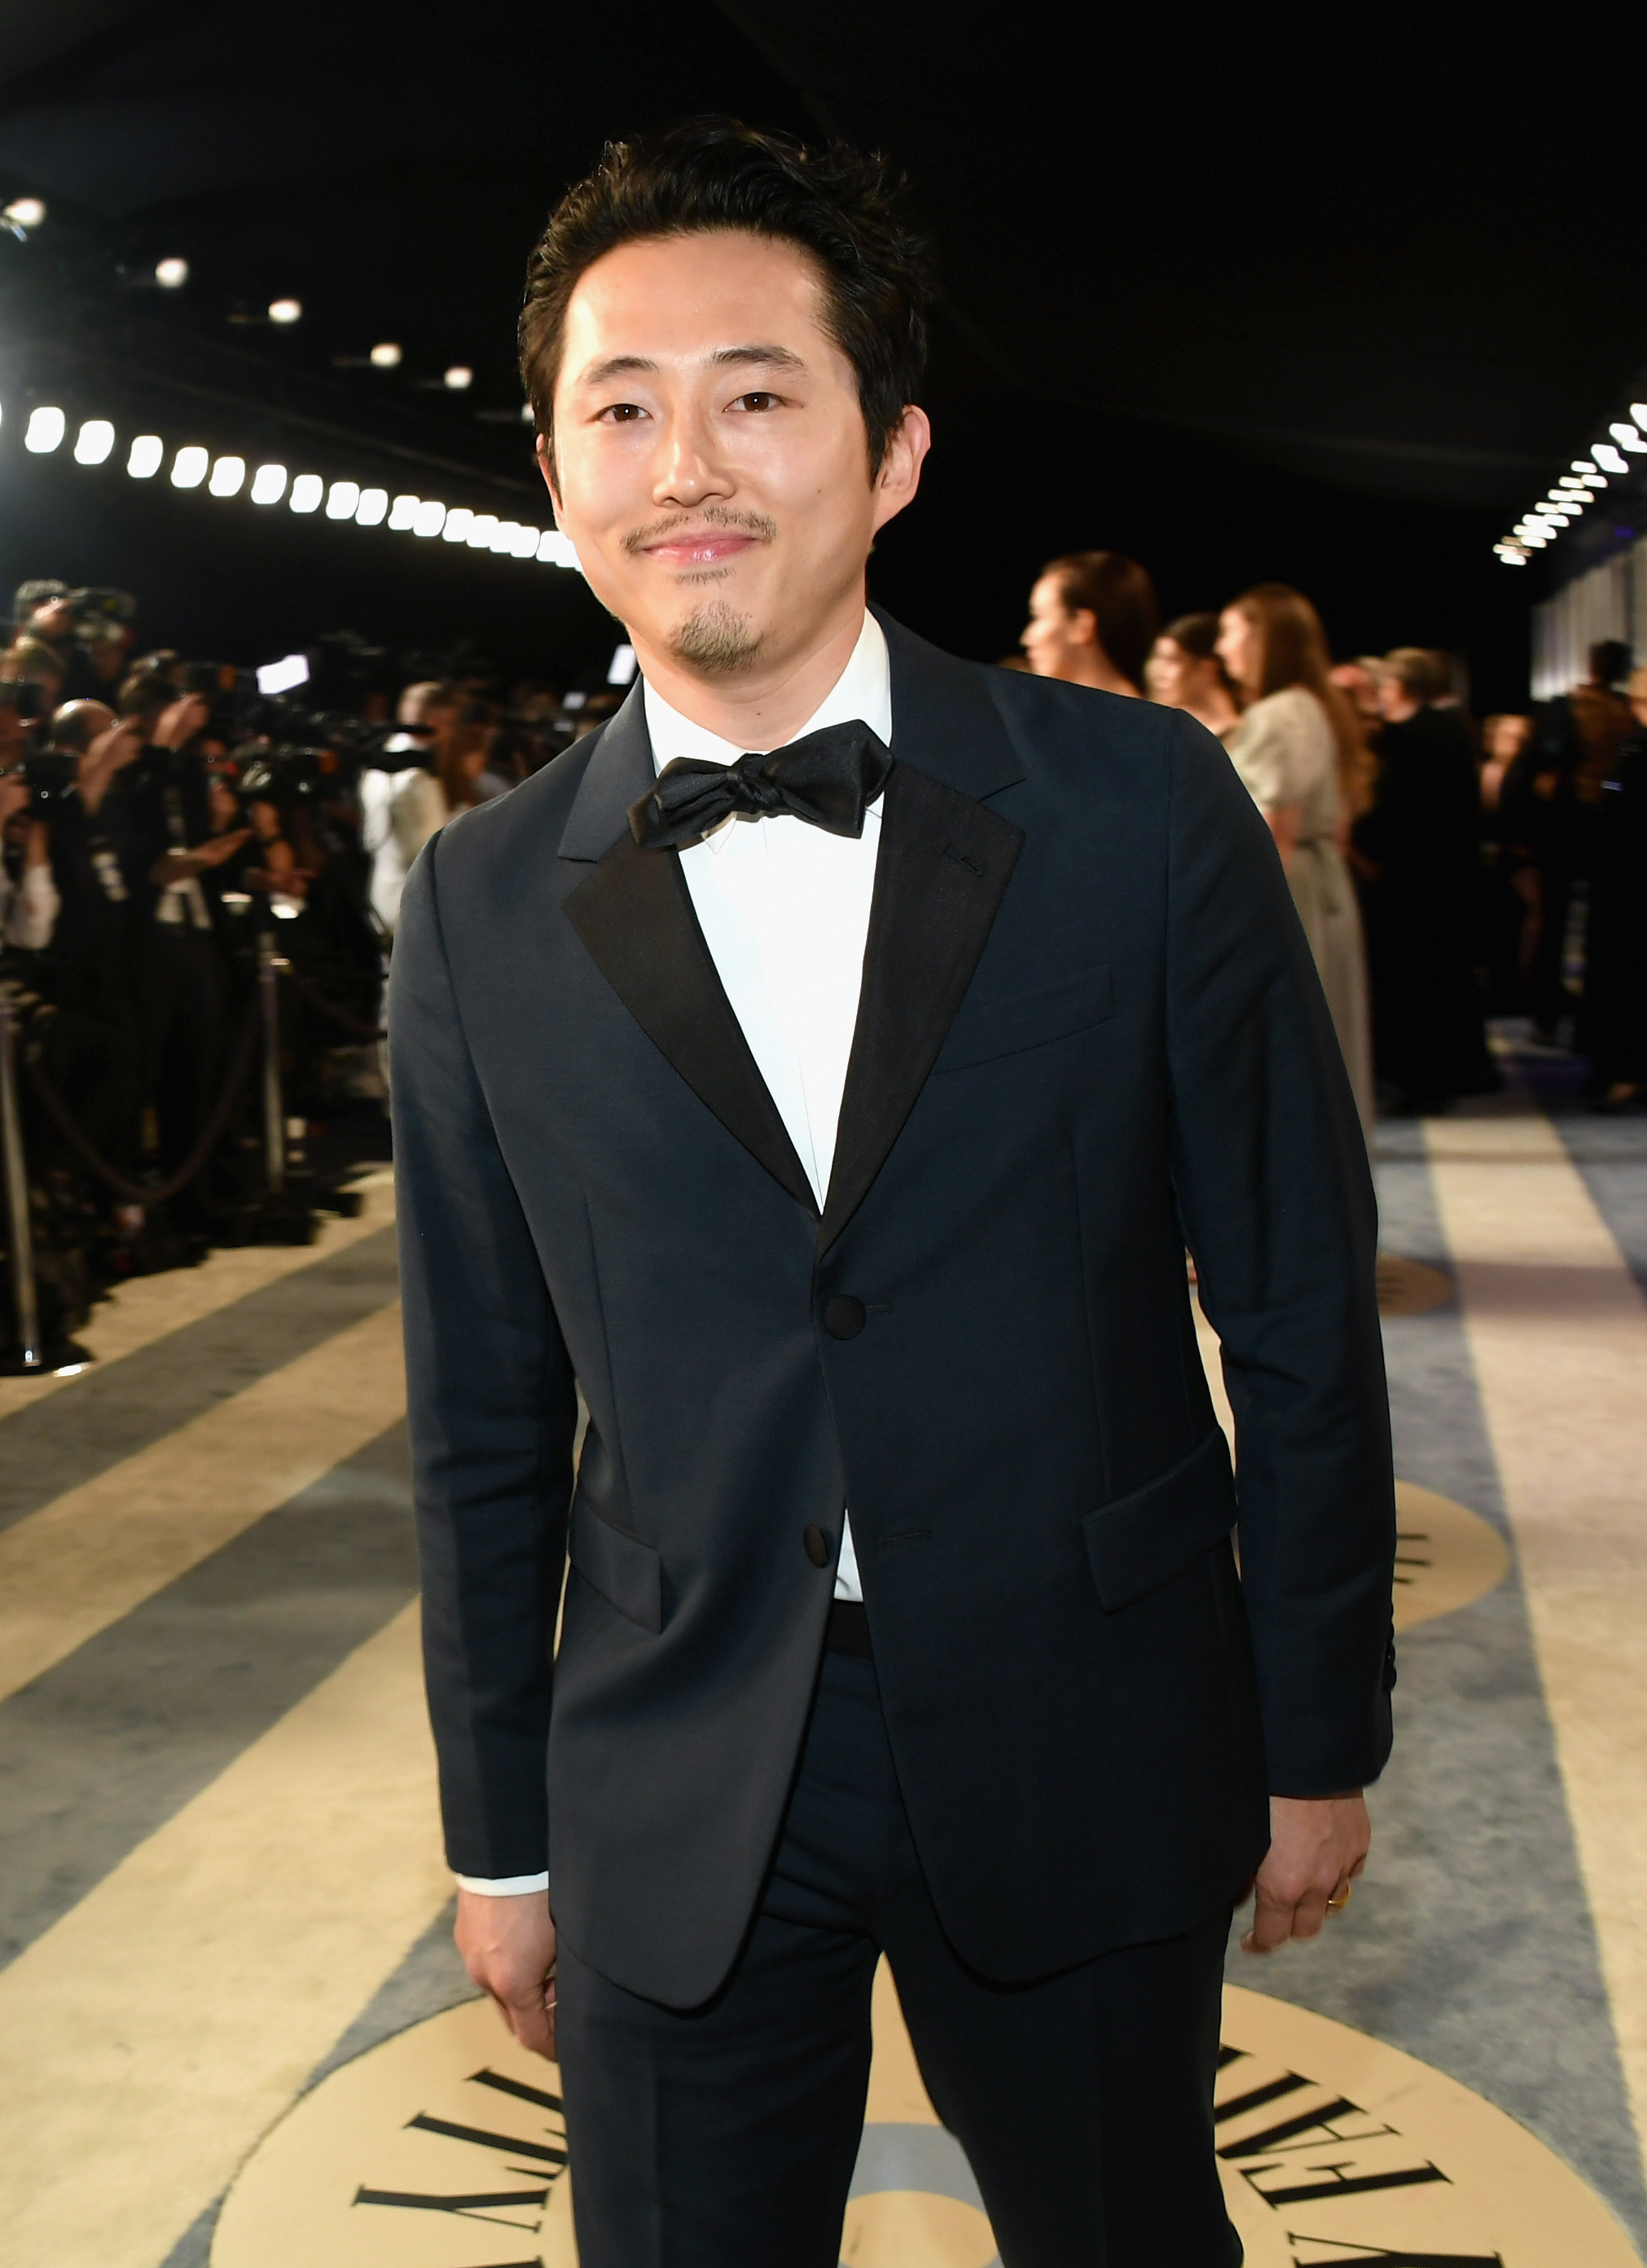 Steven Yeun at the Vanity Fair party in 2019